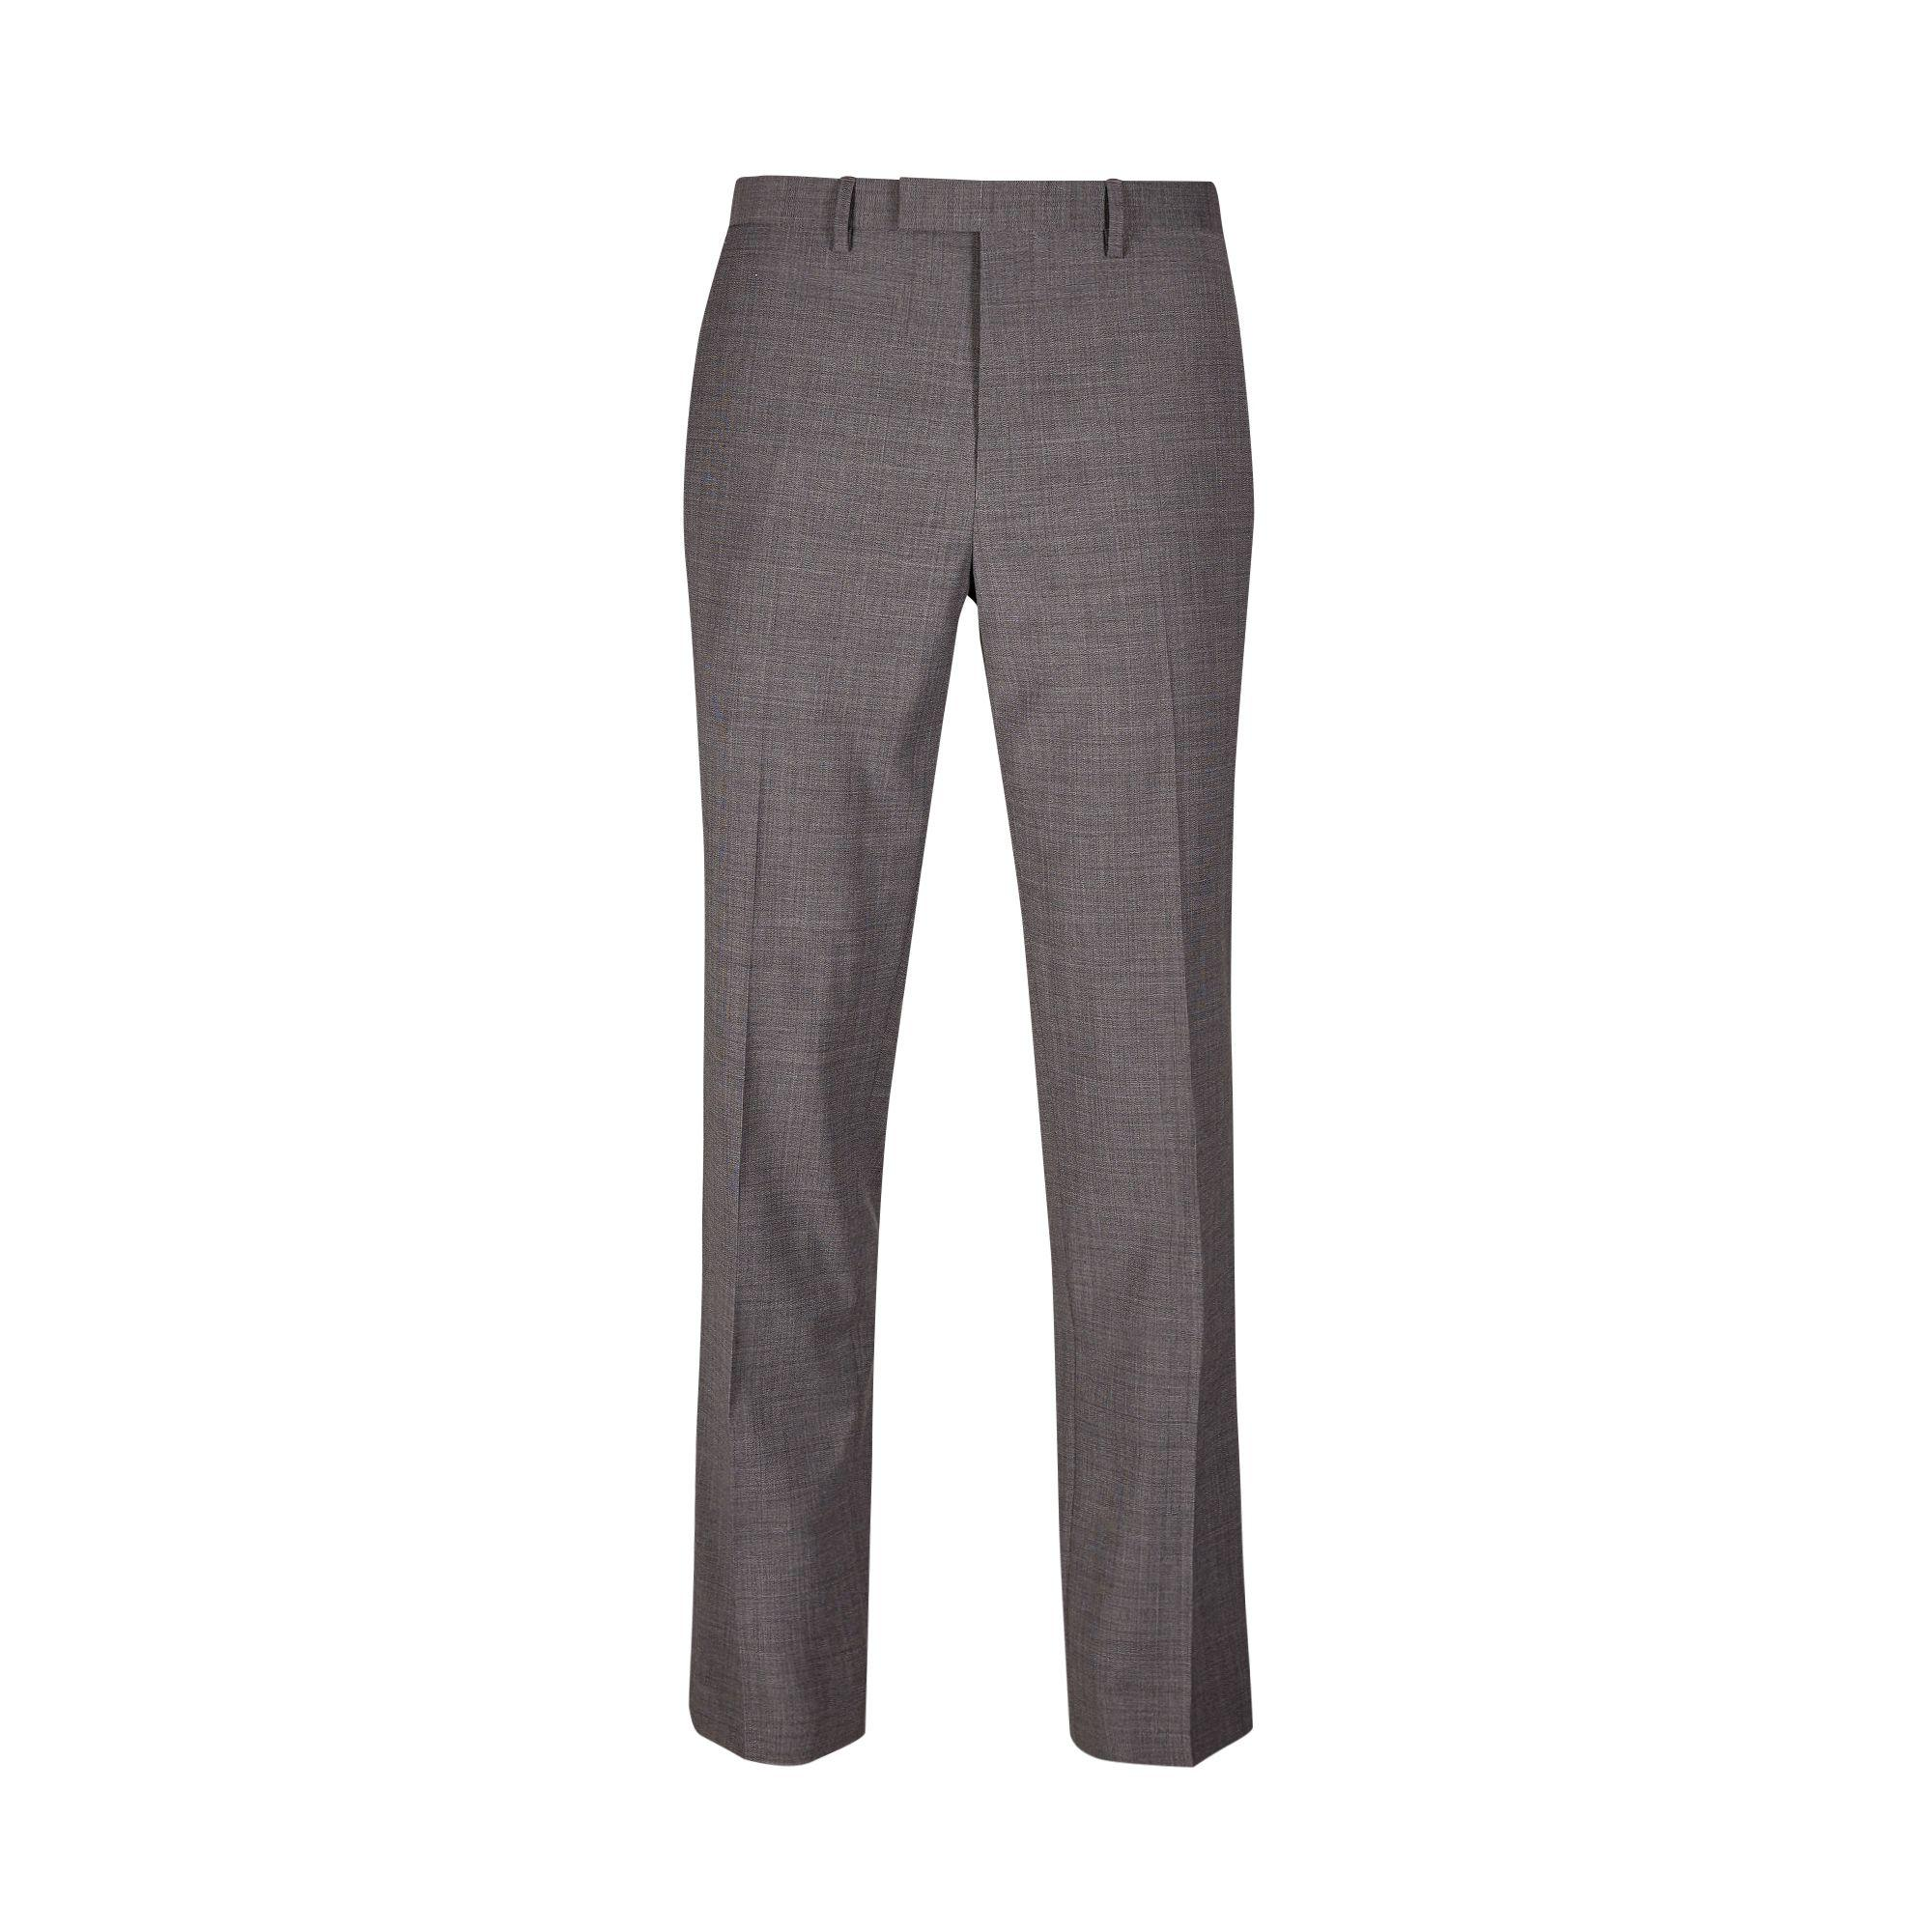 Burton Grey Smart Collection Slim Fit Suit Trousers in Grey for Men